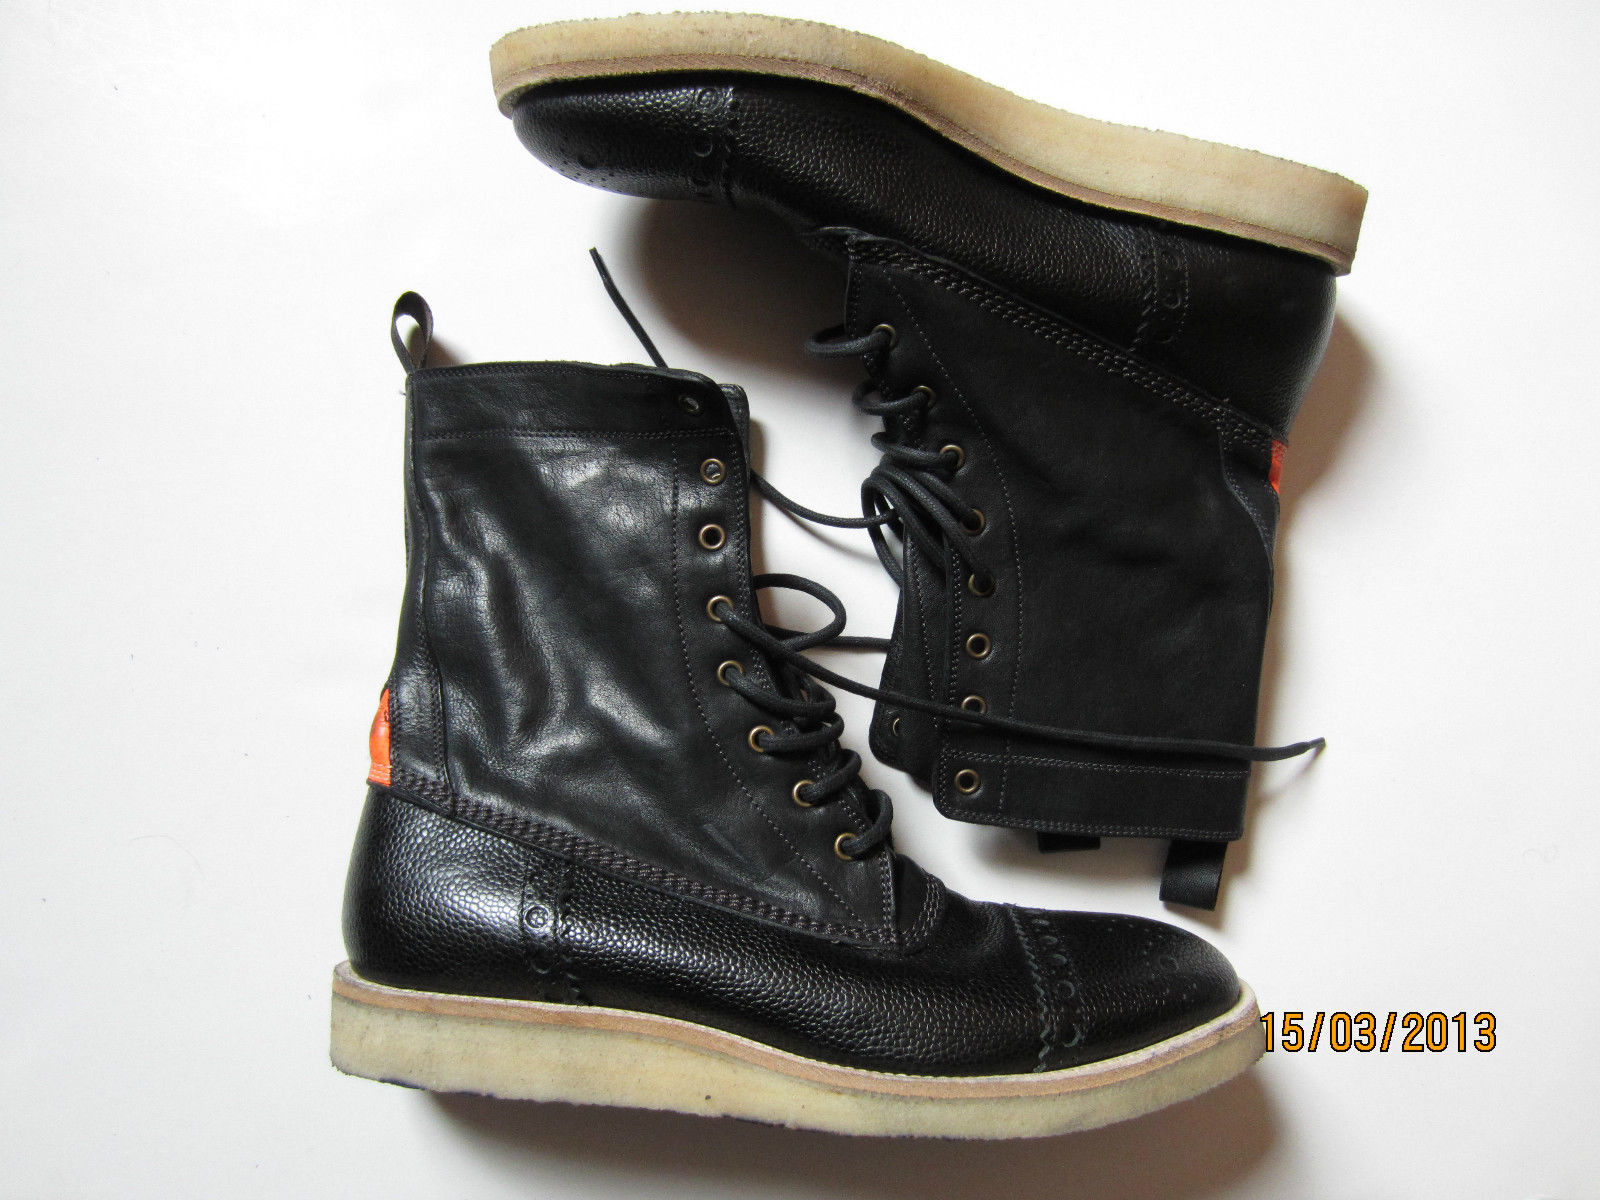 paul smith mens brogue boots black leather size 8 42 ebay